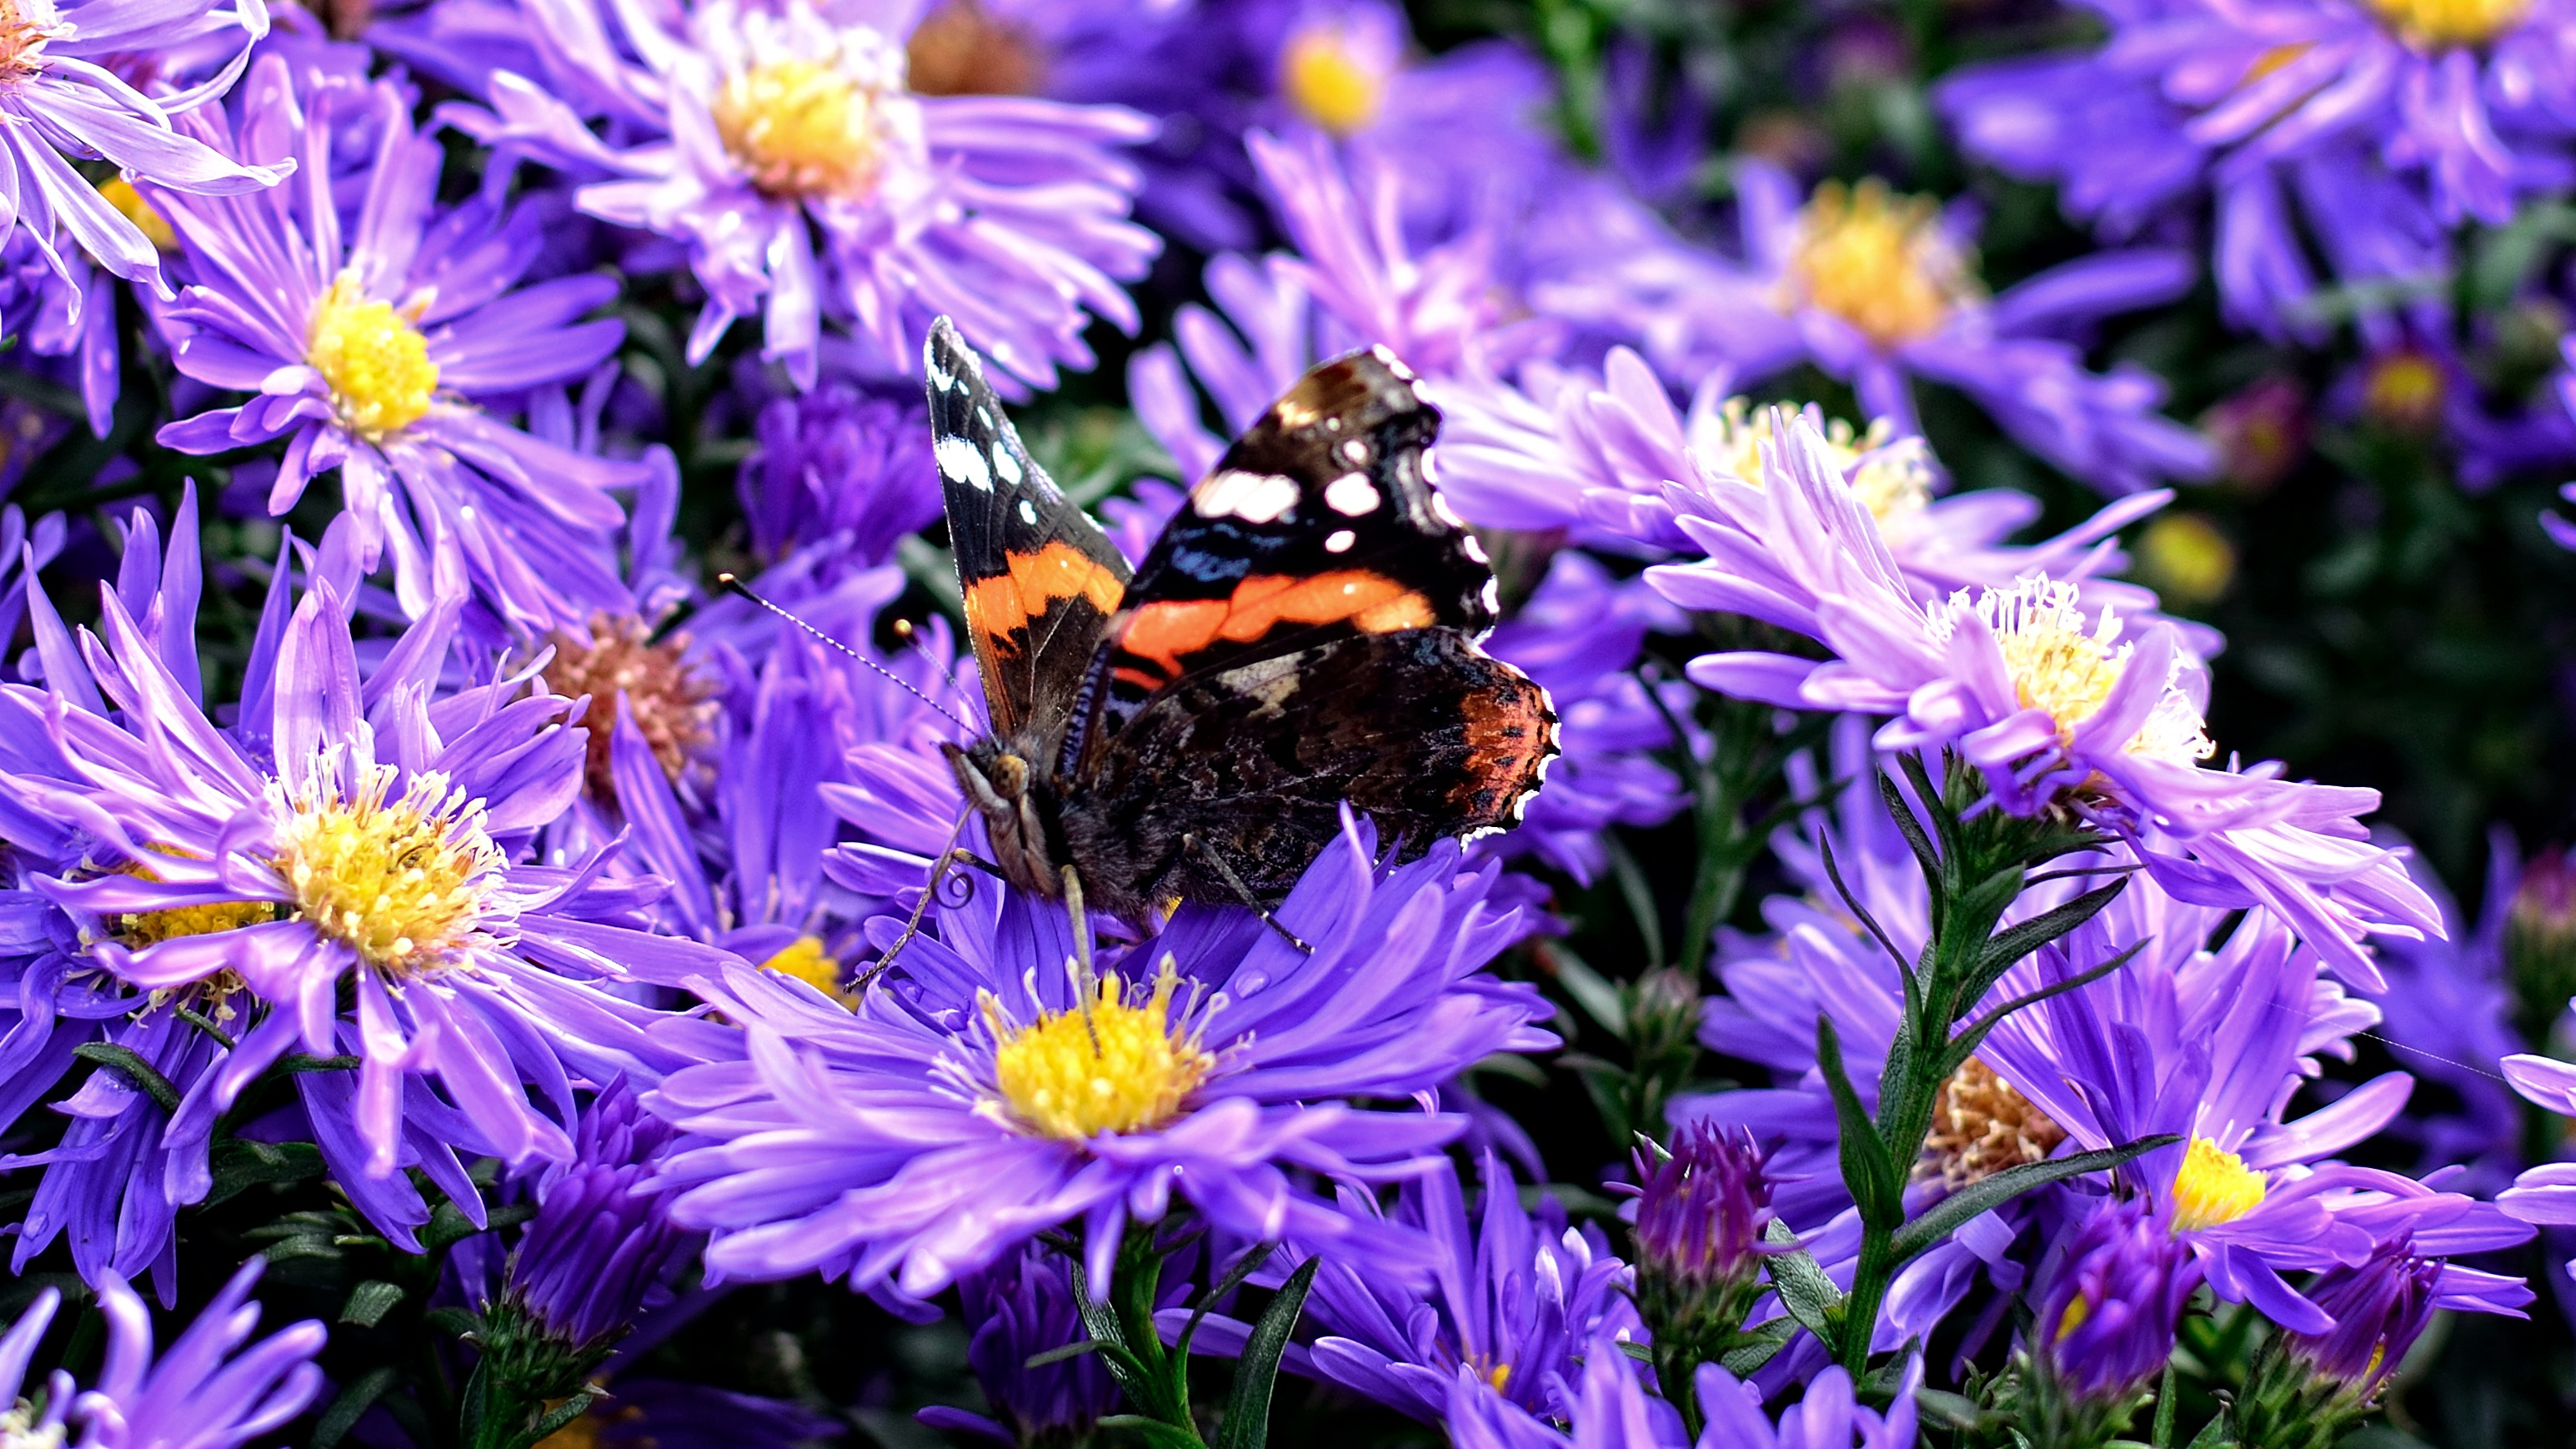 Asters are an excellent fall blooming nectar plant.